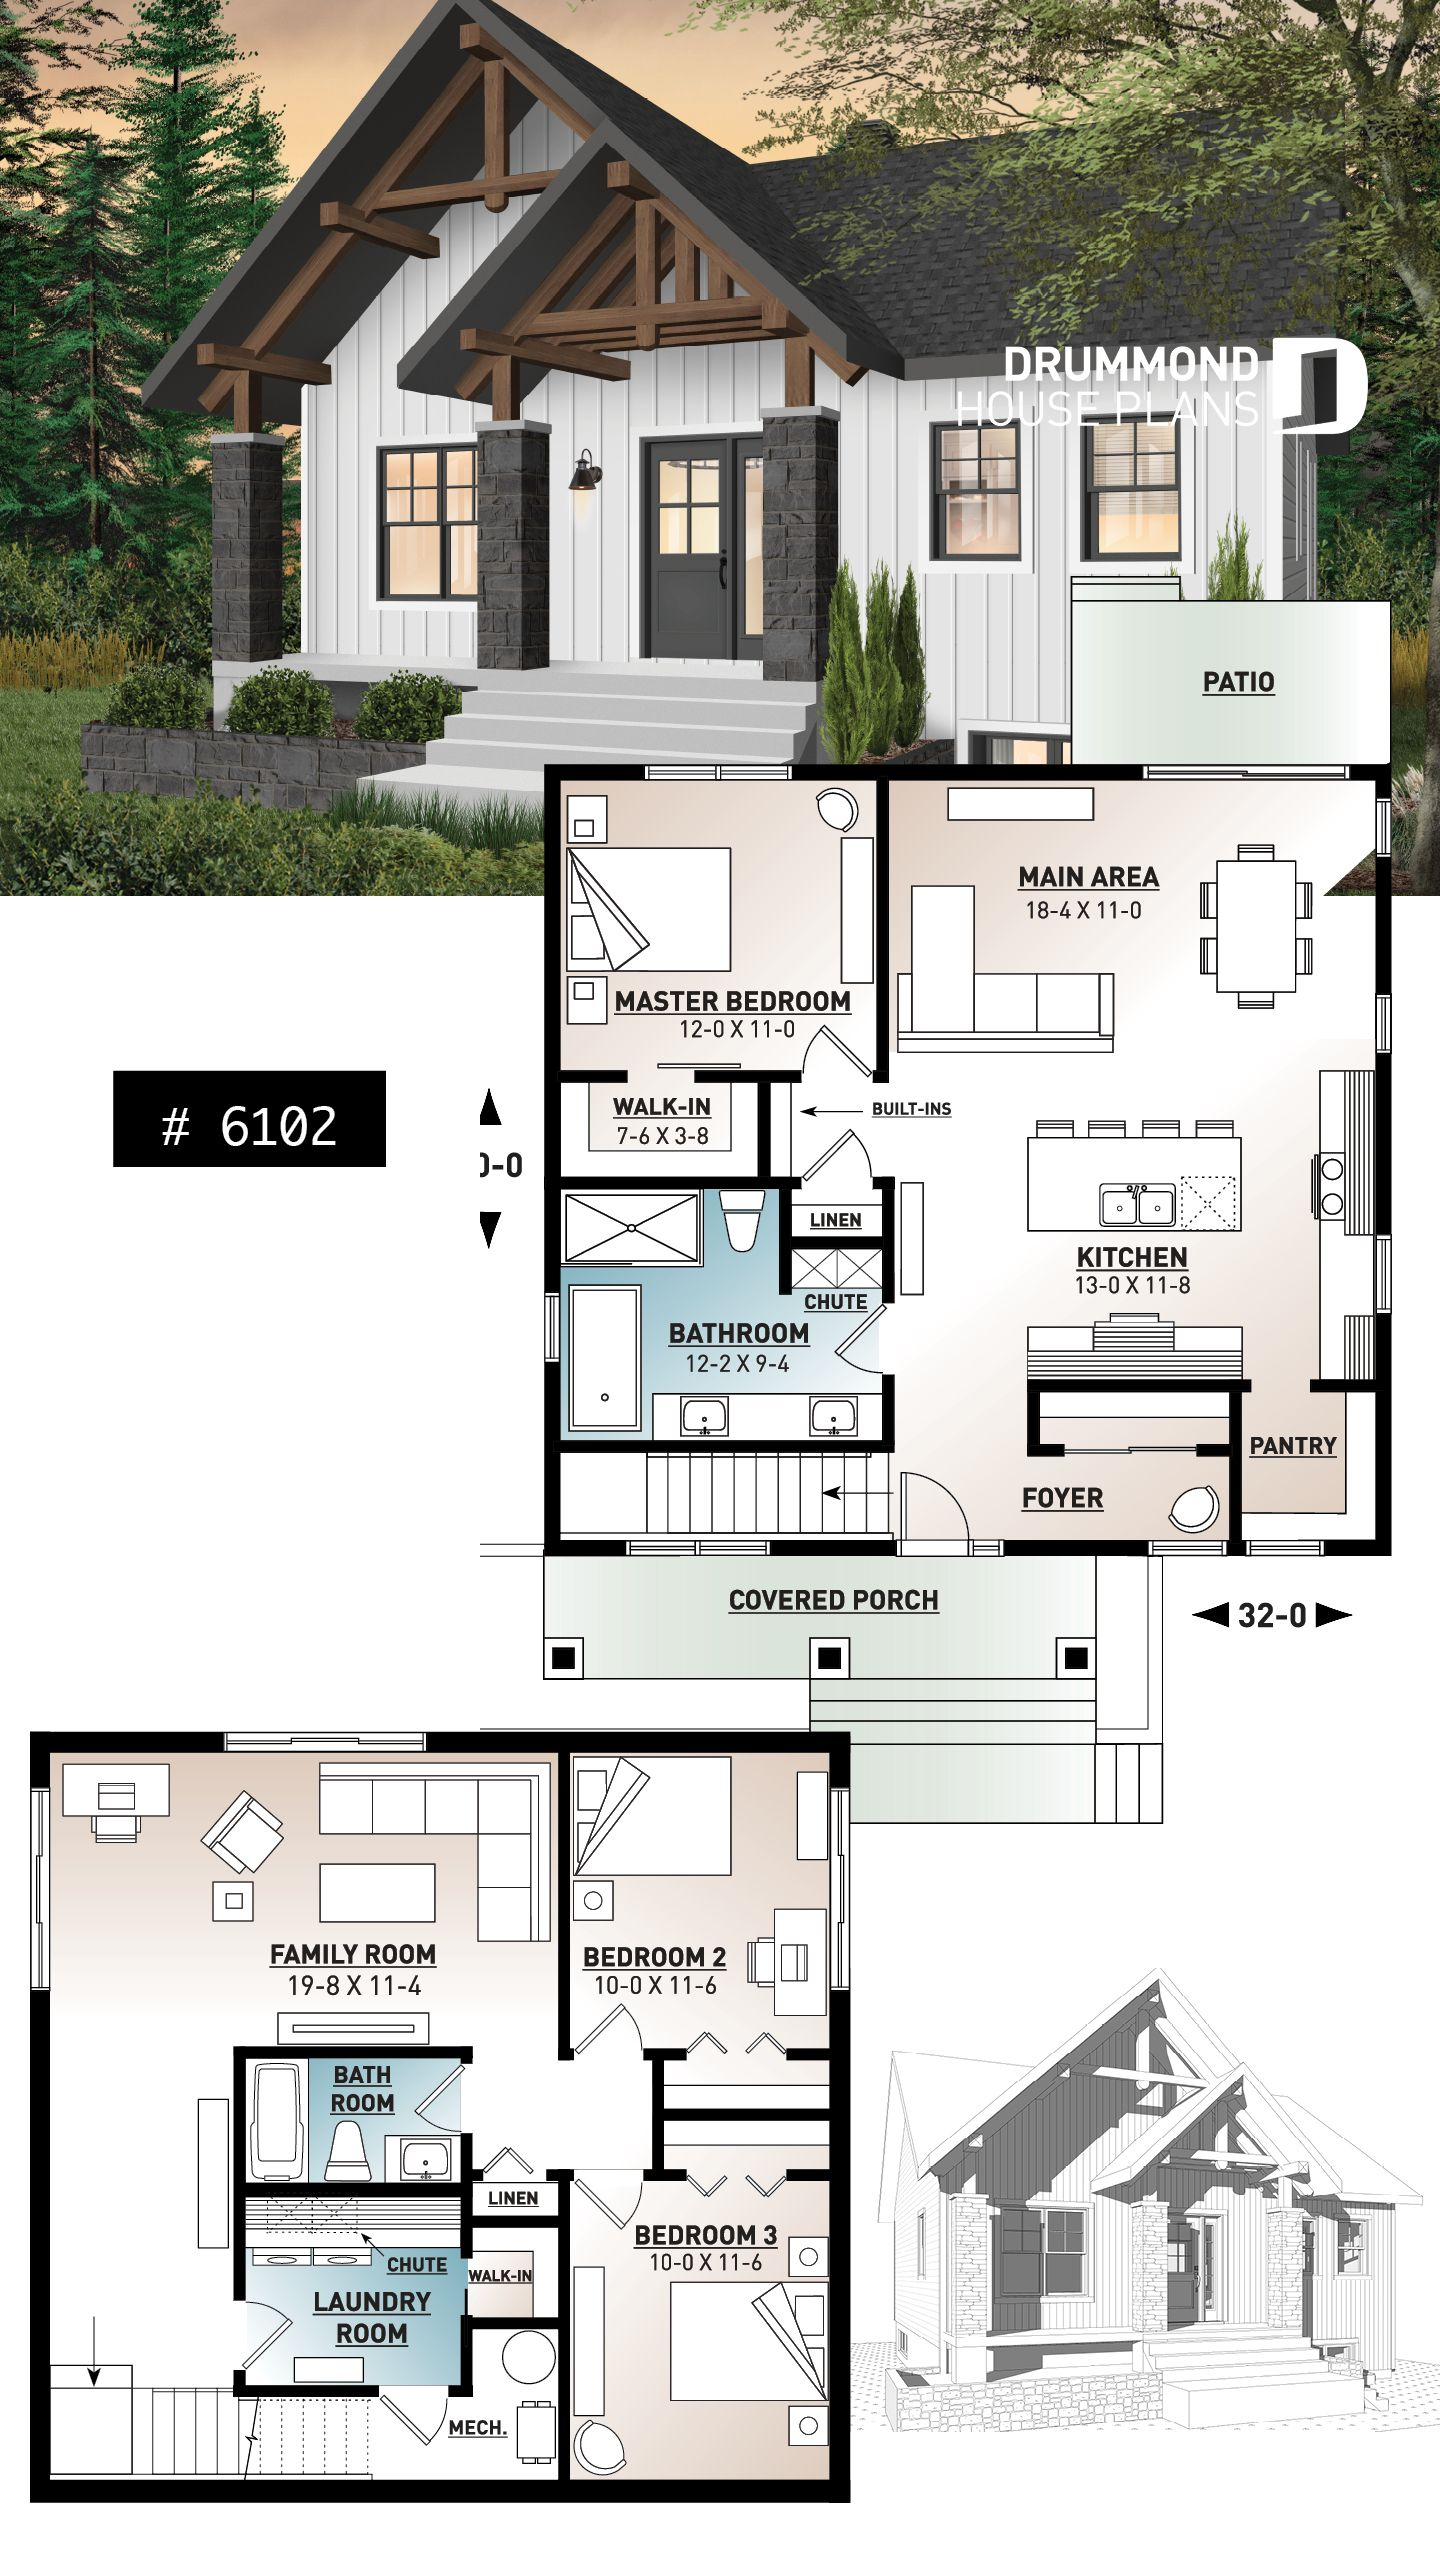 Discover The Plan 6102 Nordika Which Will Please You For Its 1 2 3 Bedrooms And For Its Modern Rustic Styles Rustic House Plans Bungalow House Plans Basement House Plans